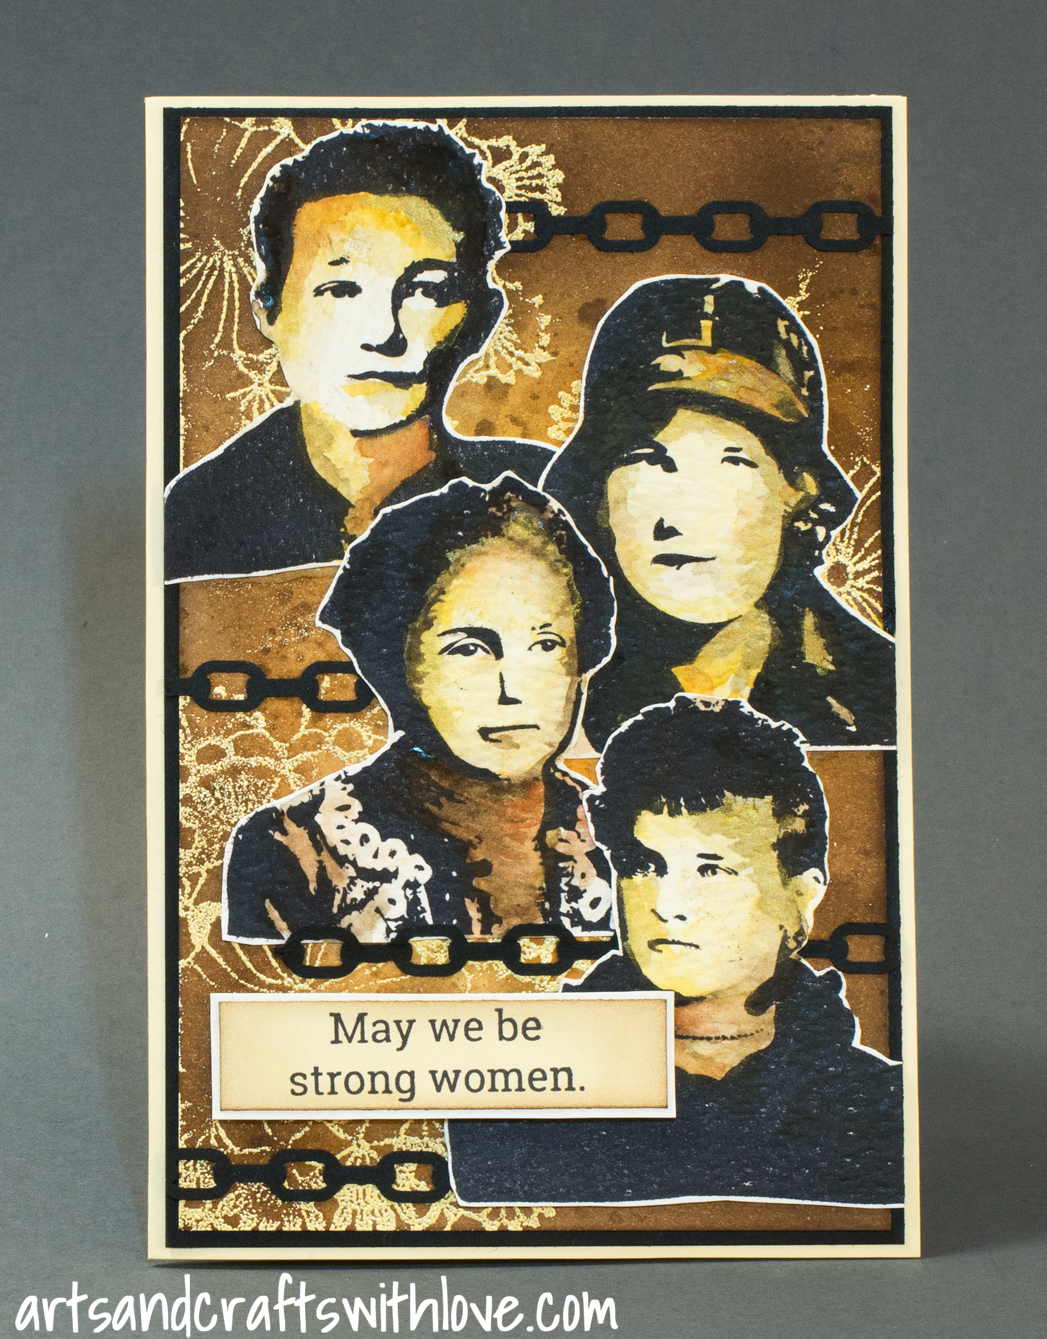 Cardmaking: Card for Craft Stamper March Take It, Make It challenge: May we be strong women